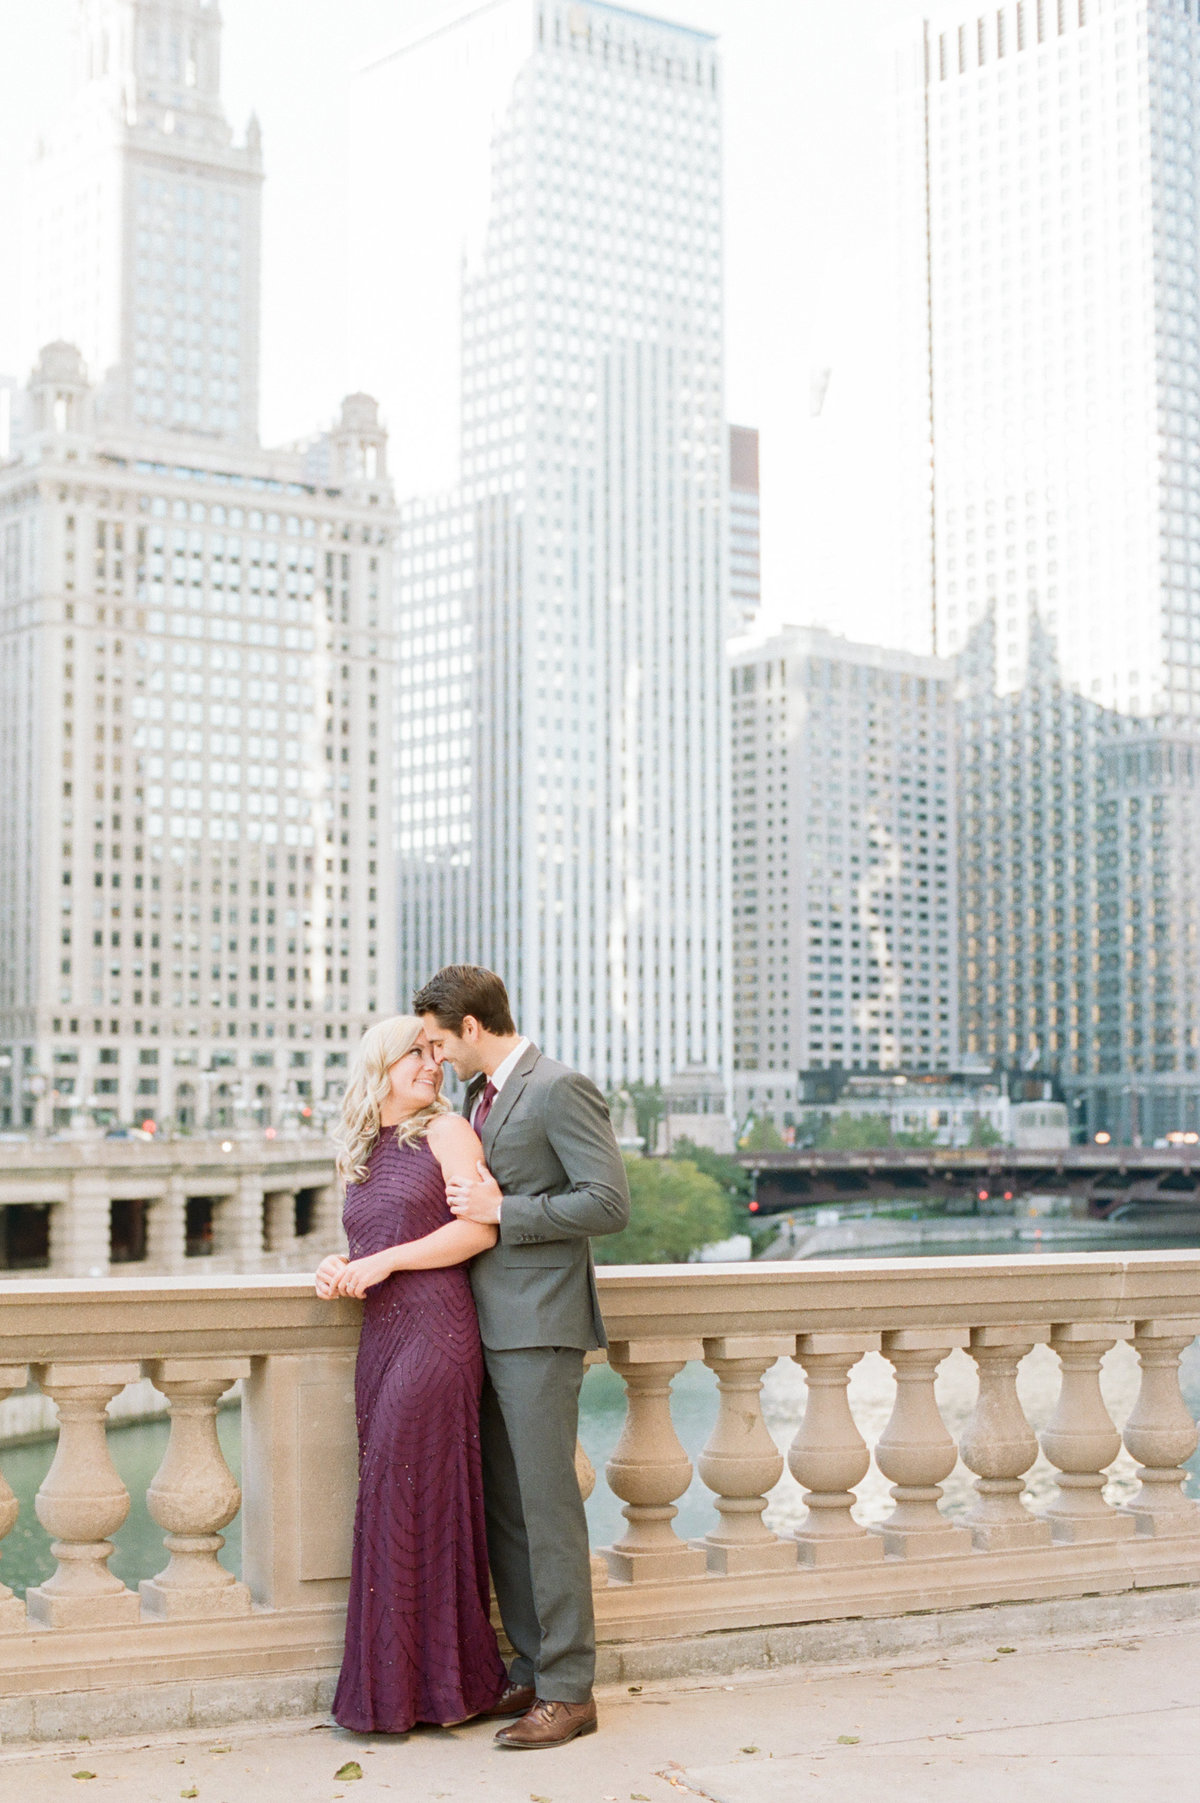 engaged couple in elegant suit and gown in front of chicago skyline